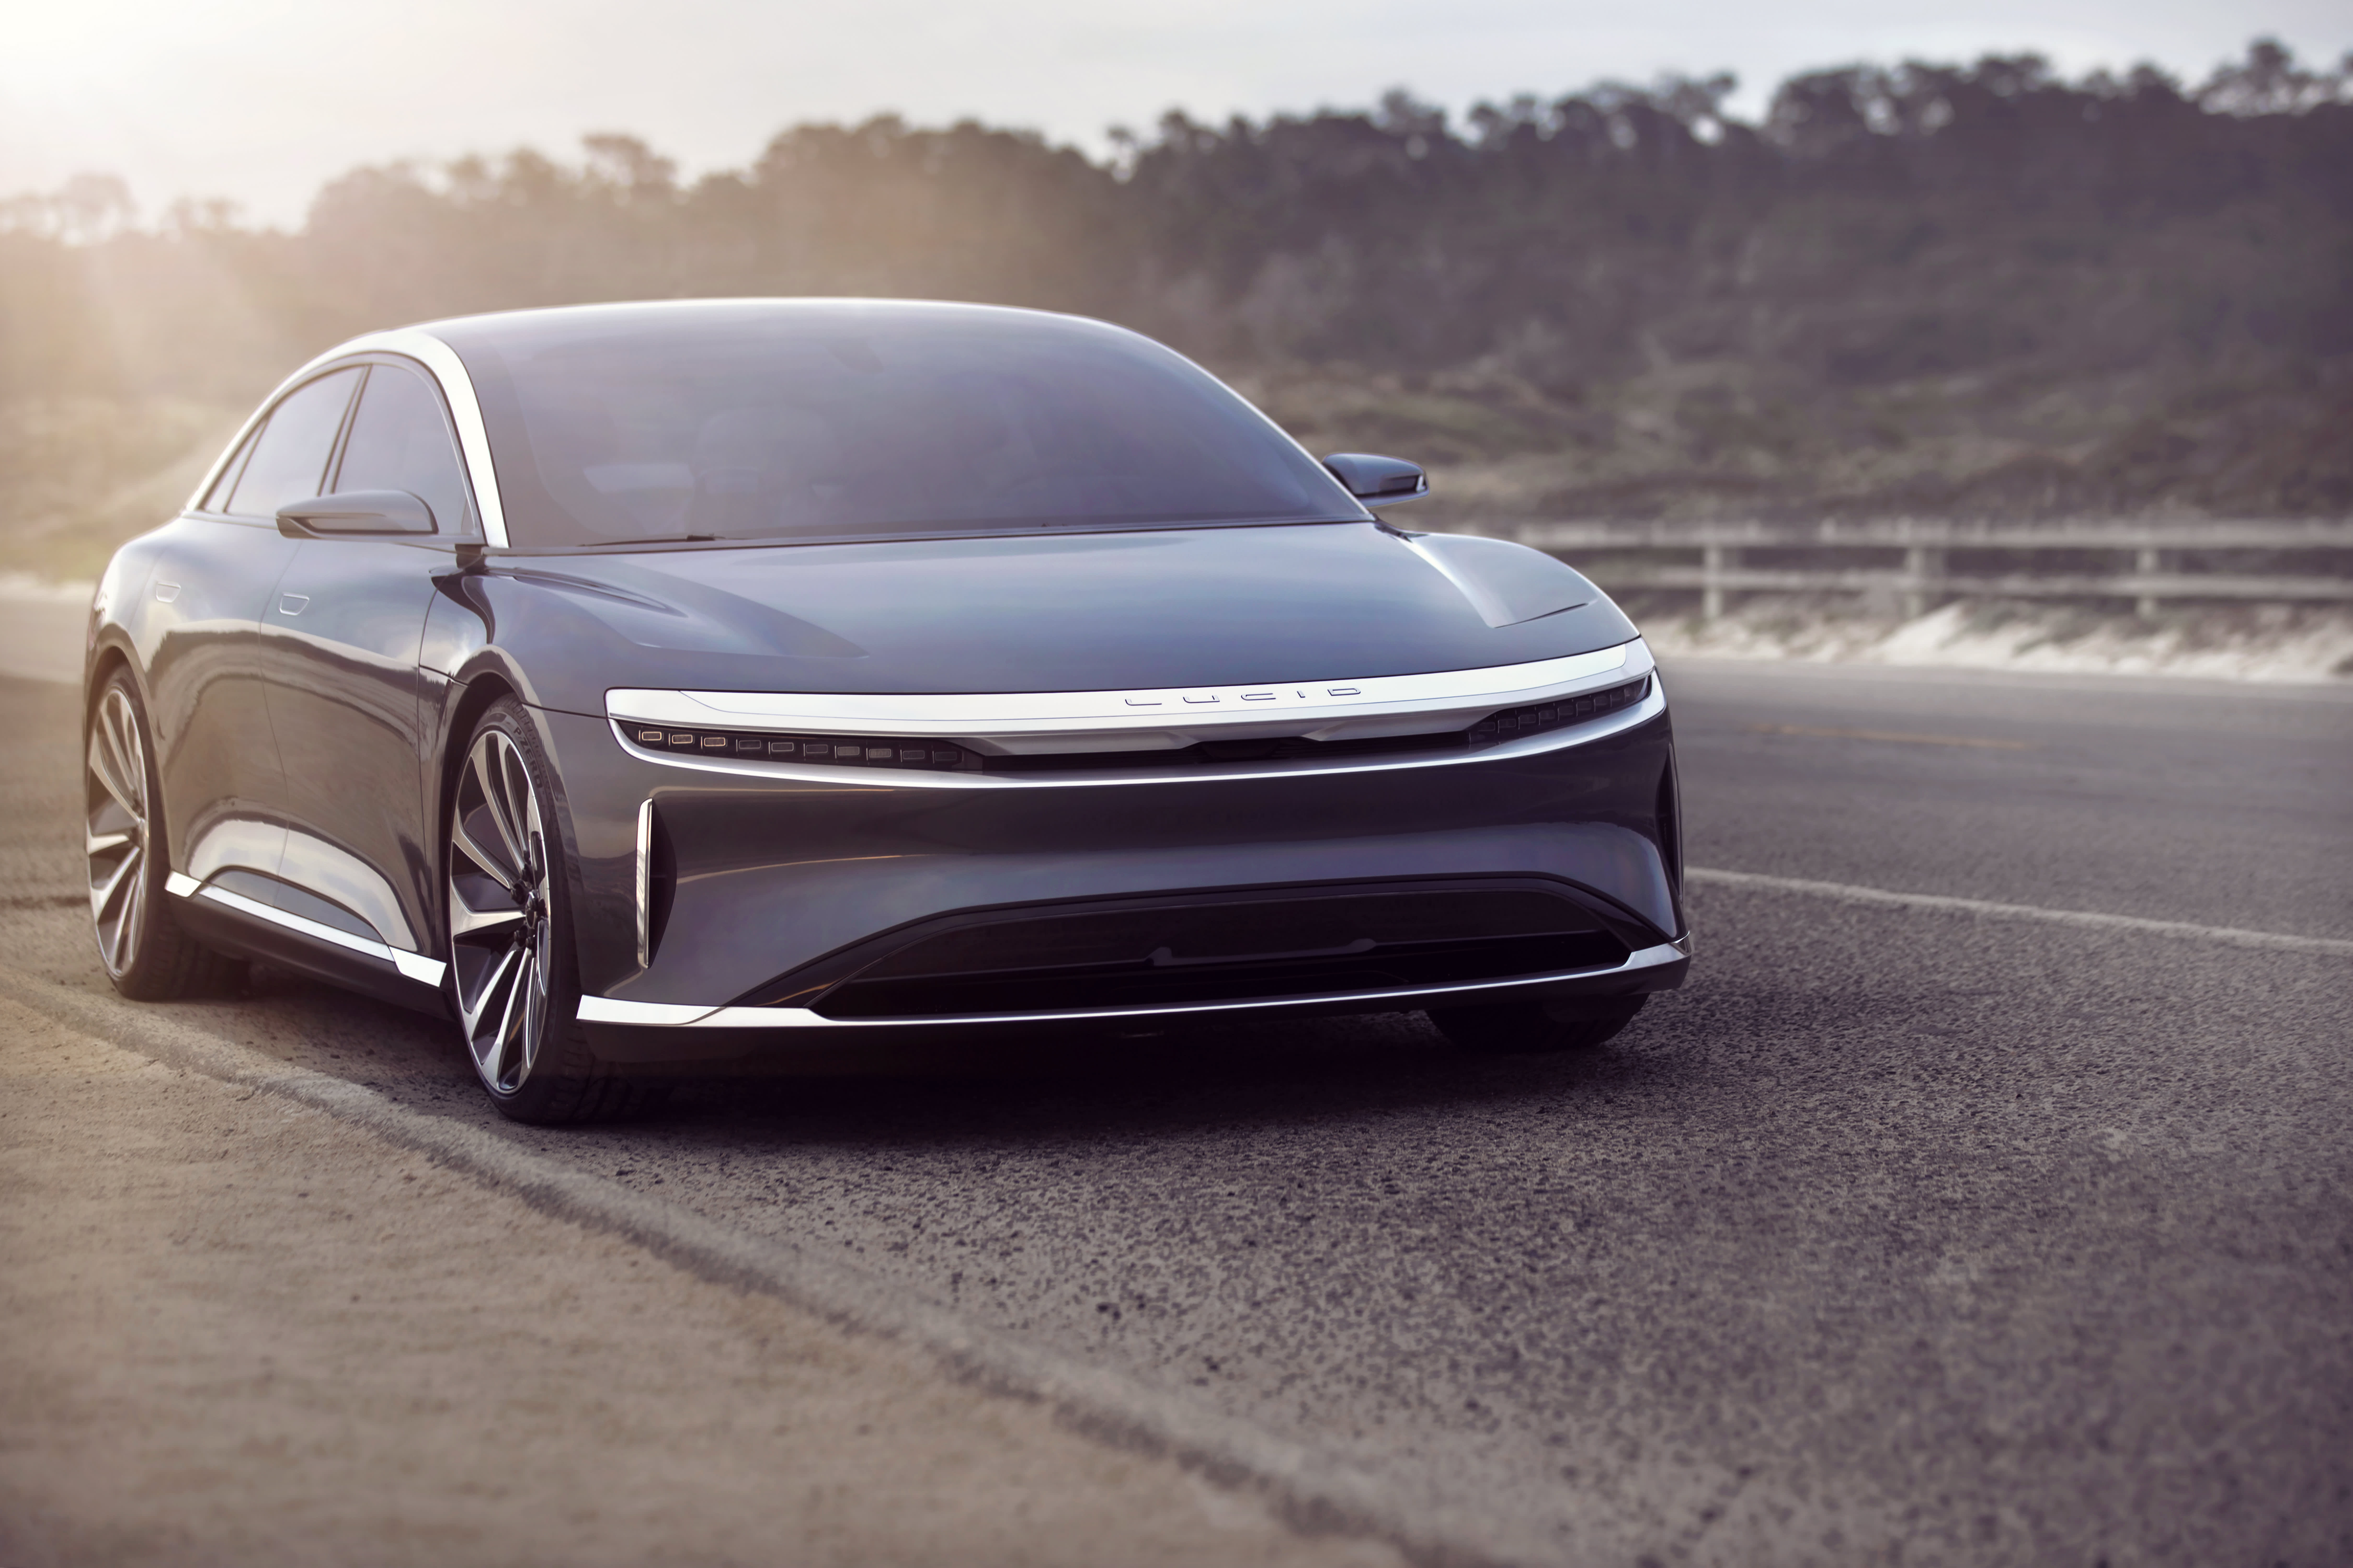 Lucid challenges Tesla with a luxury EV sedan that has a record 517 miles of range per charge